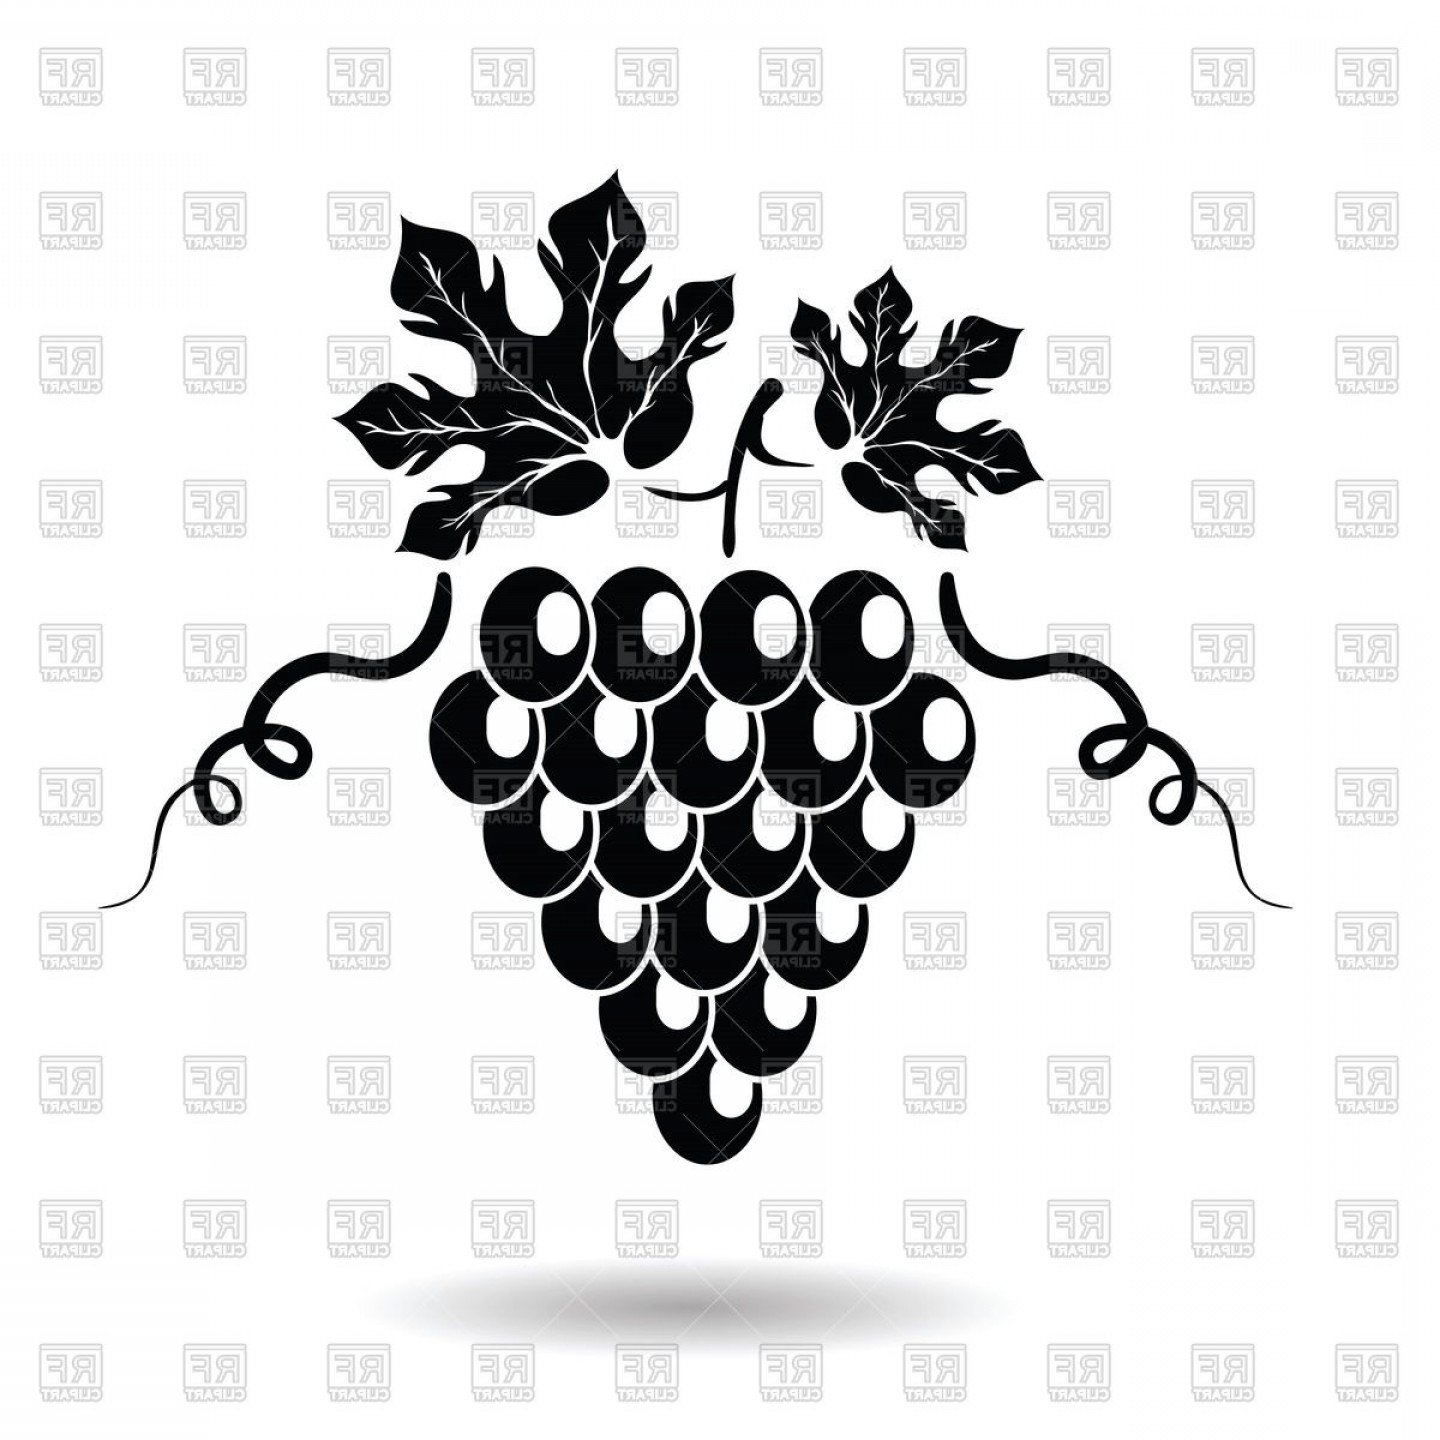 Grapes Clip Art Vector: Black Graphic Grapes With Leaves Vector Clipart